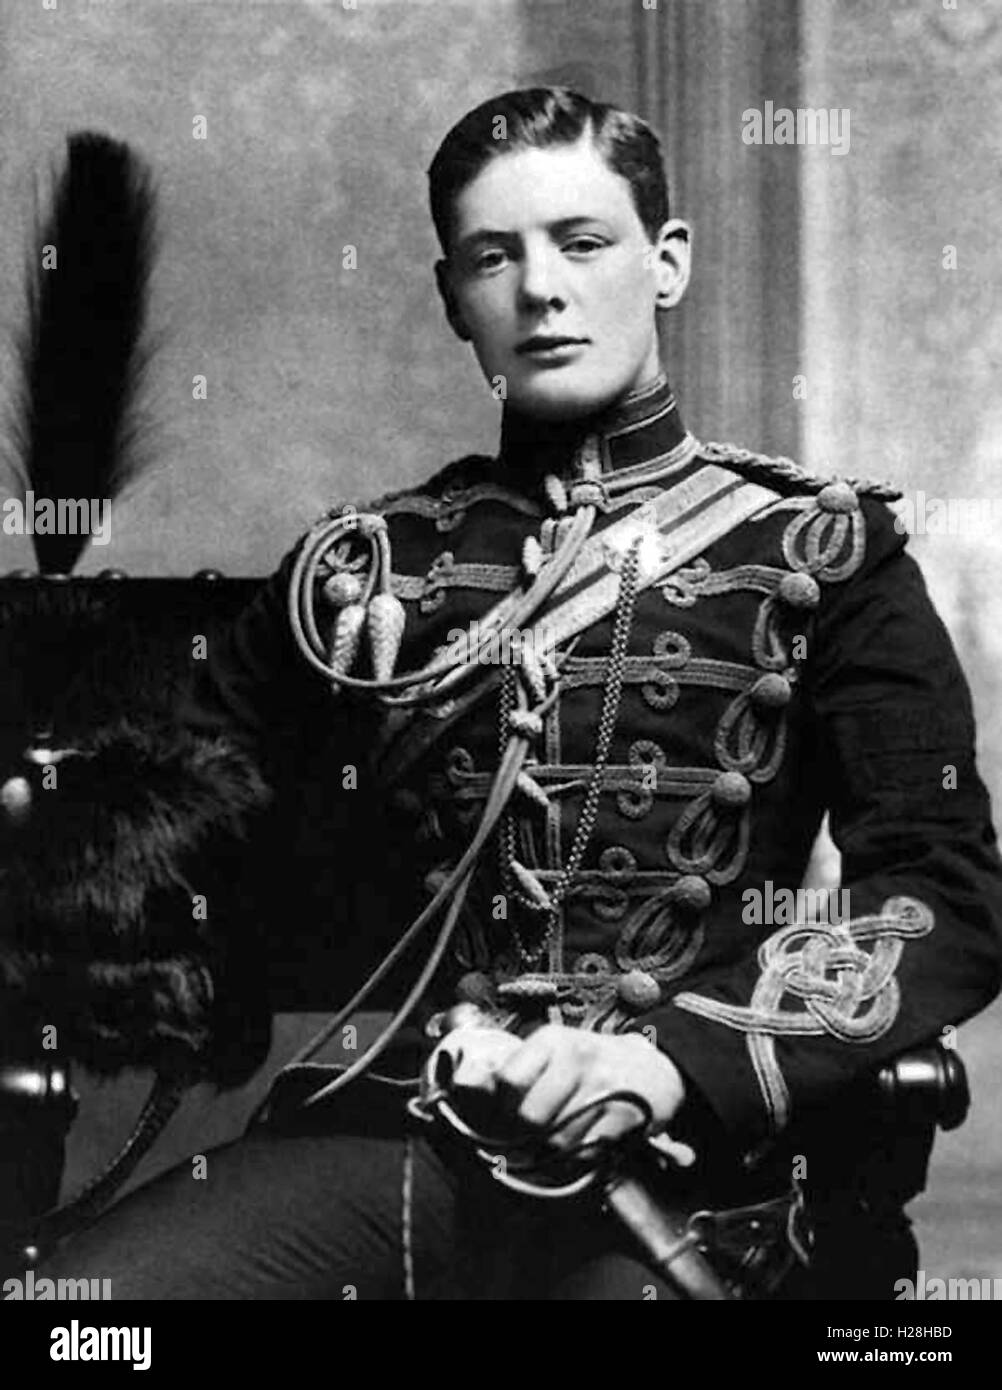 'Winston Churchill' in military uniform - Stock Image